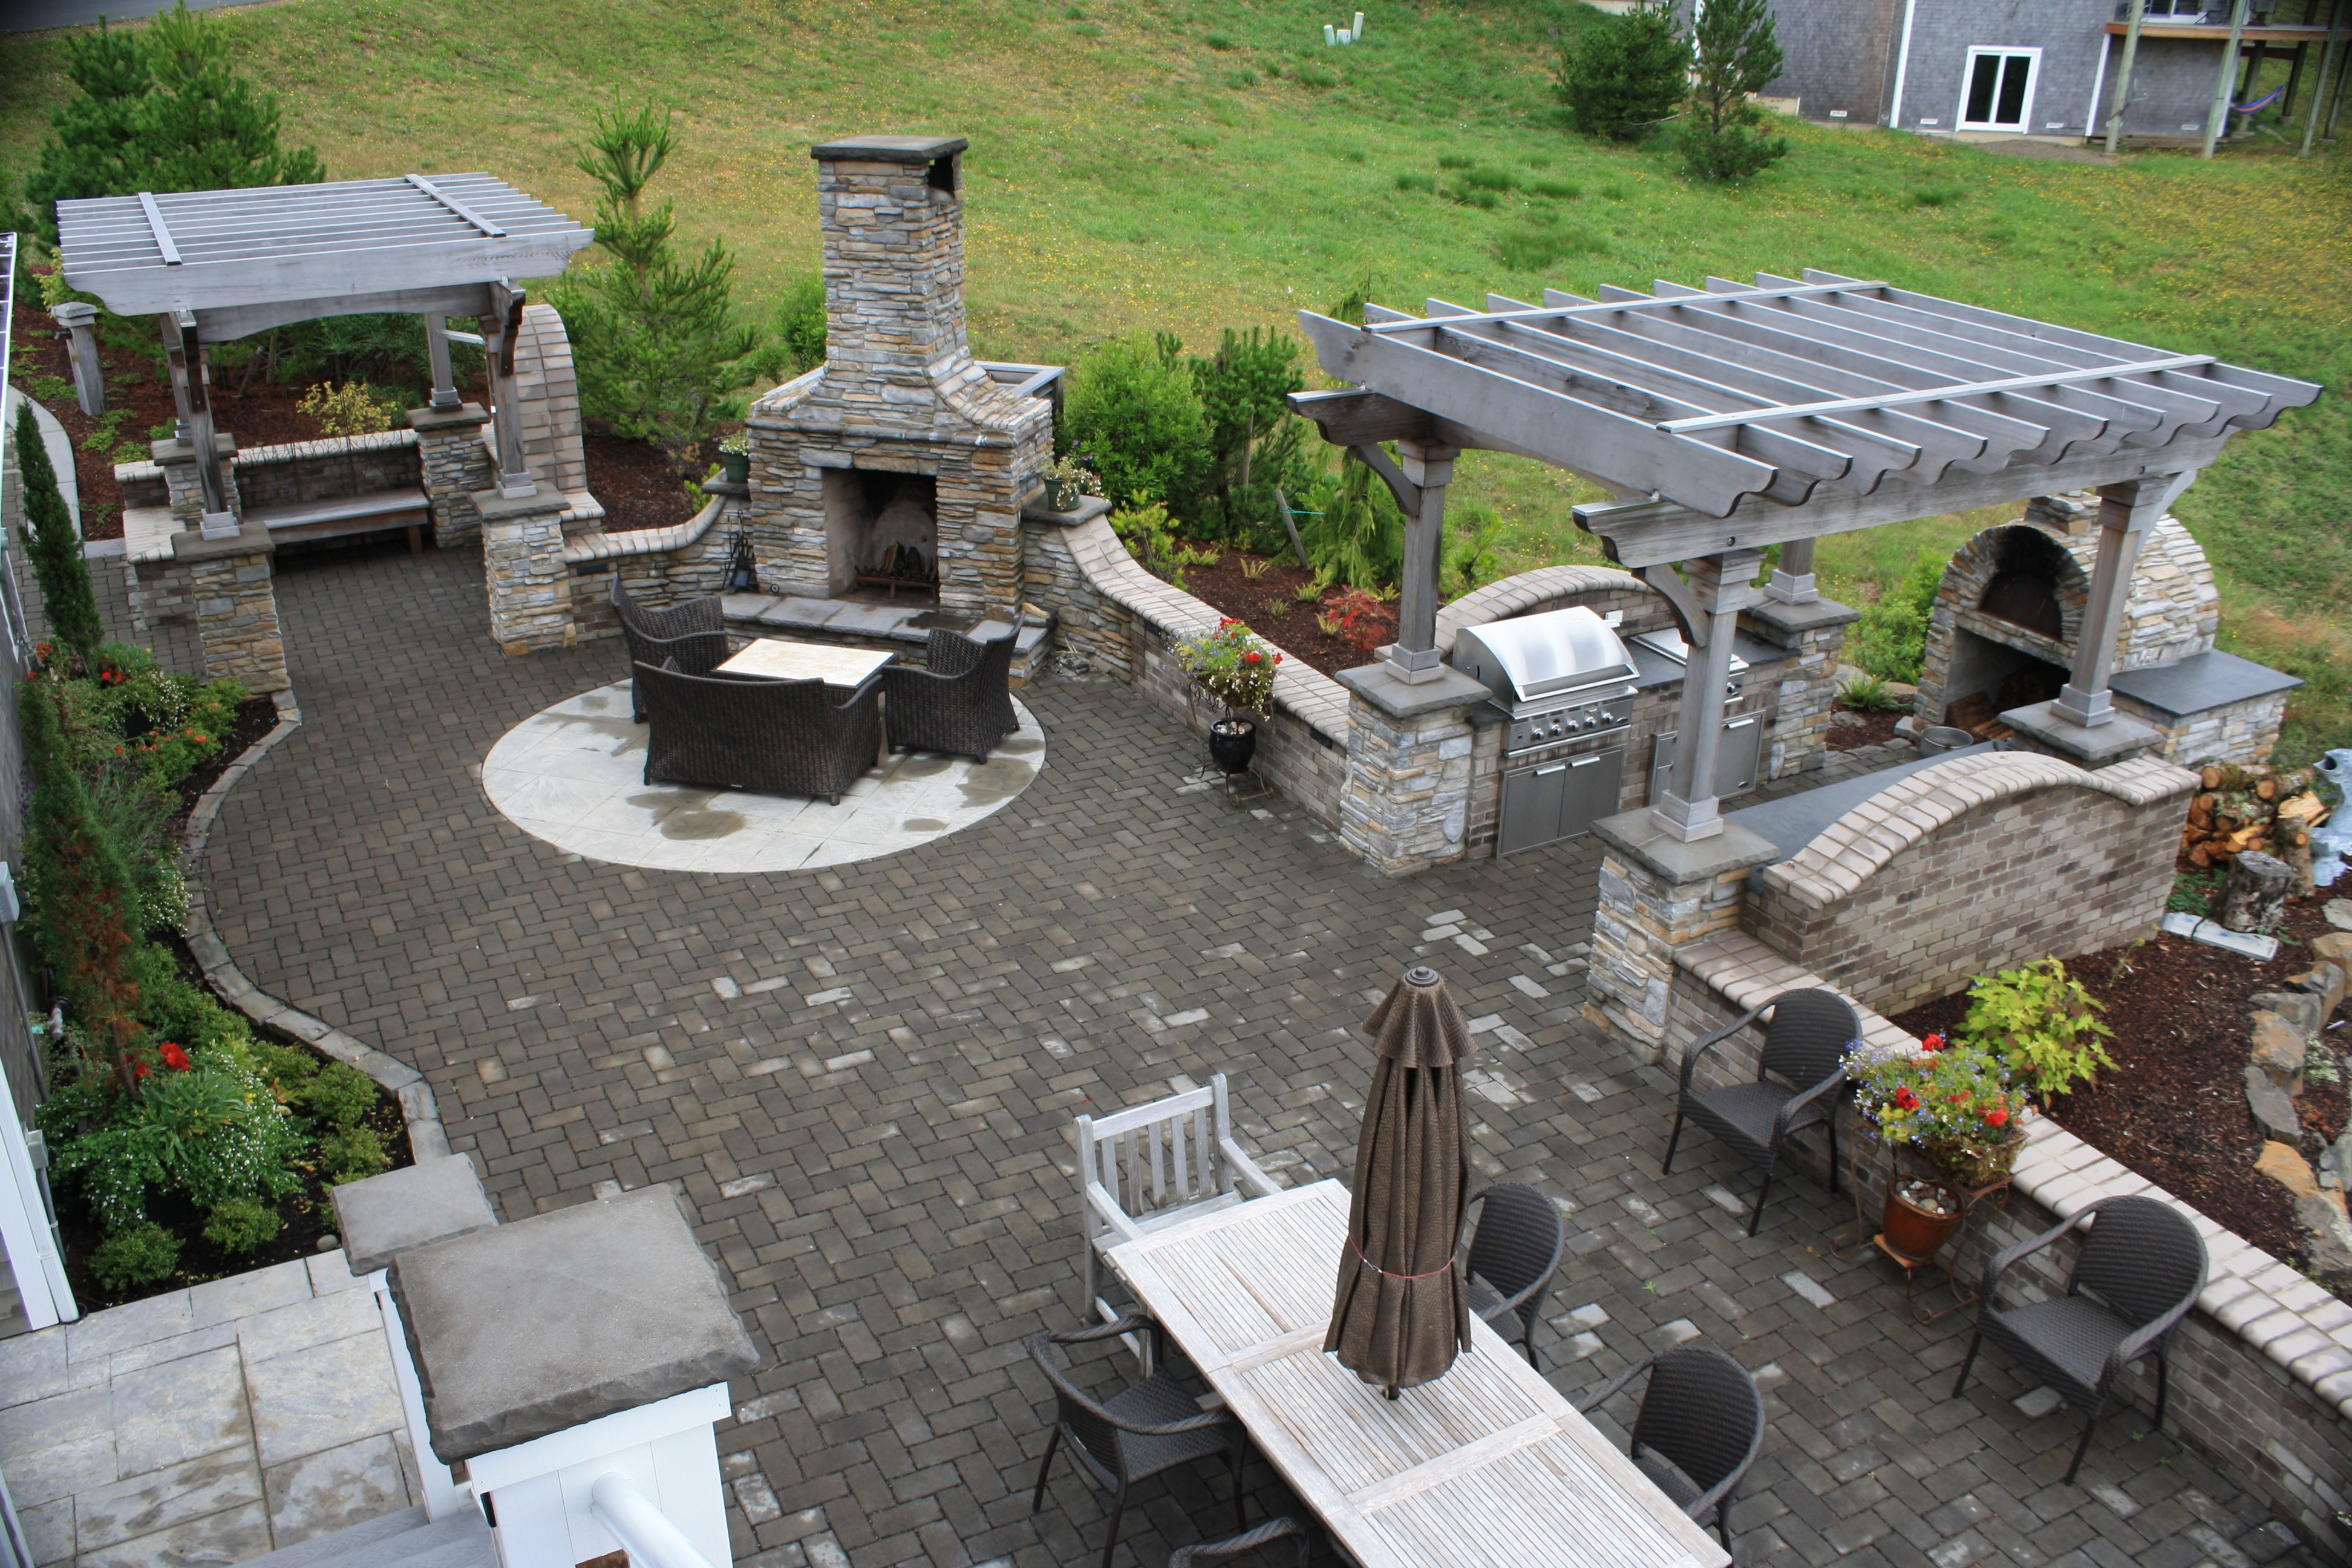 Complete Outdoor Kitchen Permeable Paver Patio Complete Outdoor Kitchen With Pizza Oven